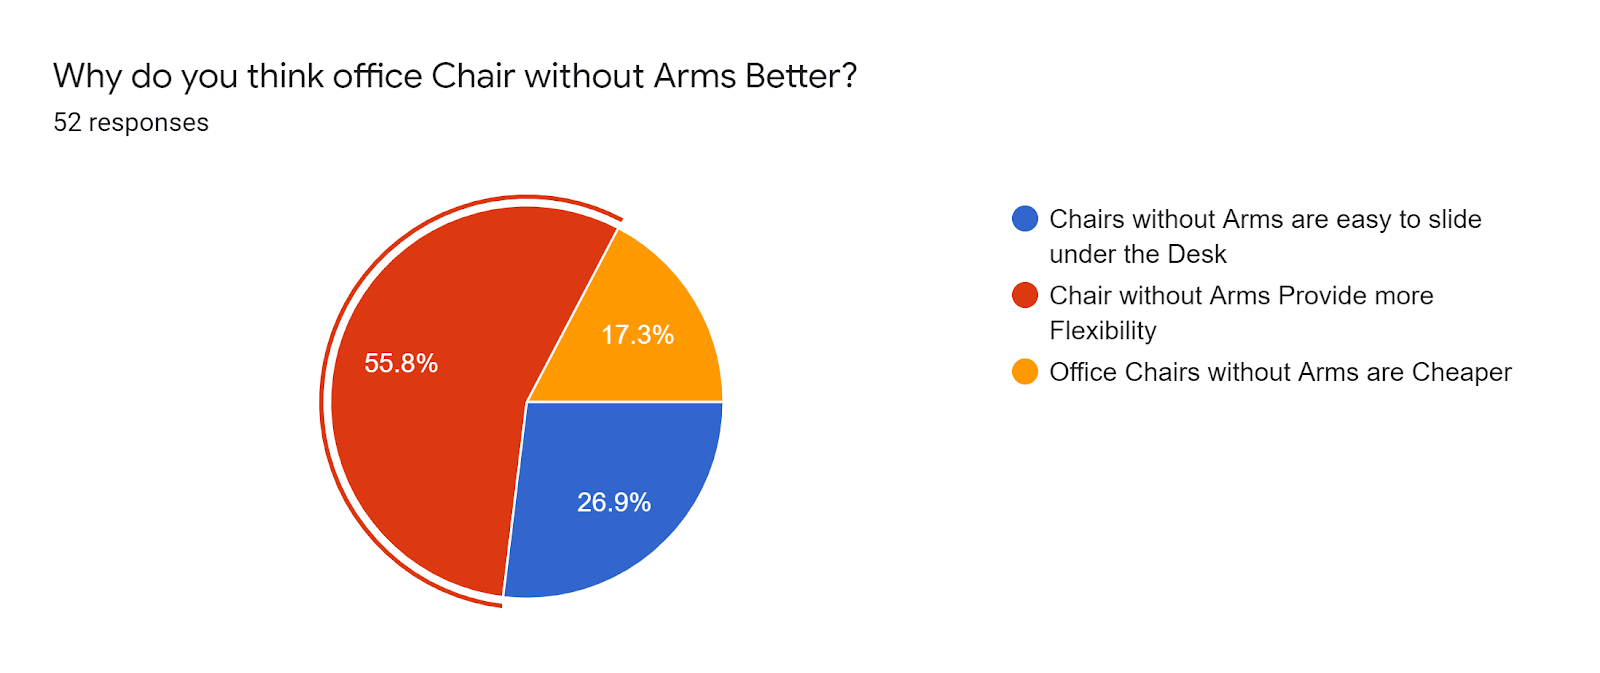 Forms response chart. Question title: Why do you think office Chair without Arms Better?. Number of responses: 52 responses.